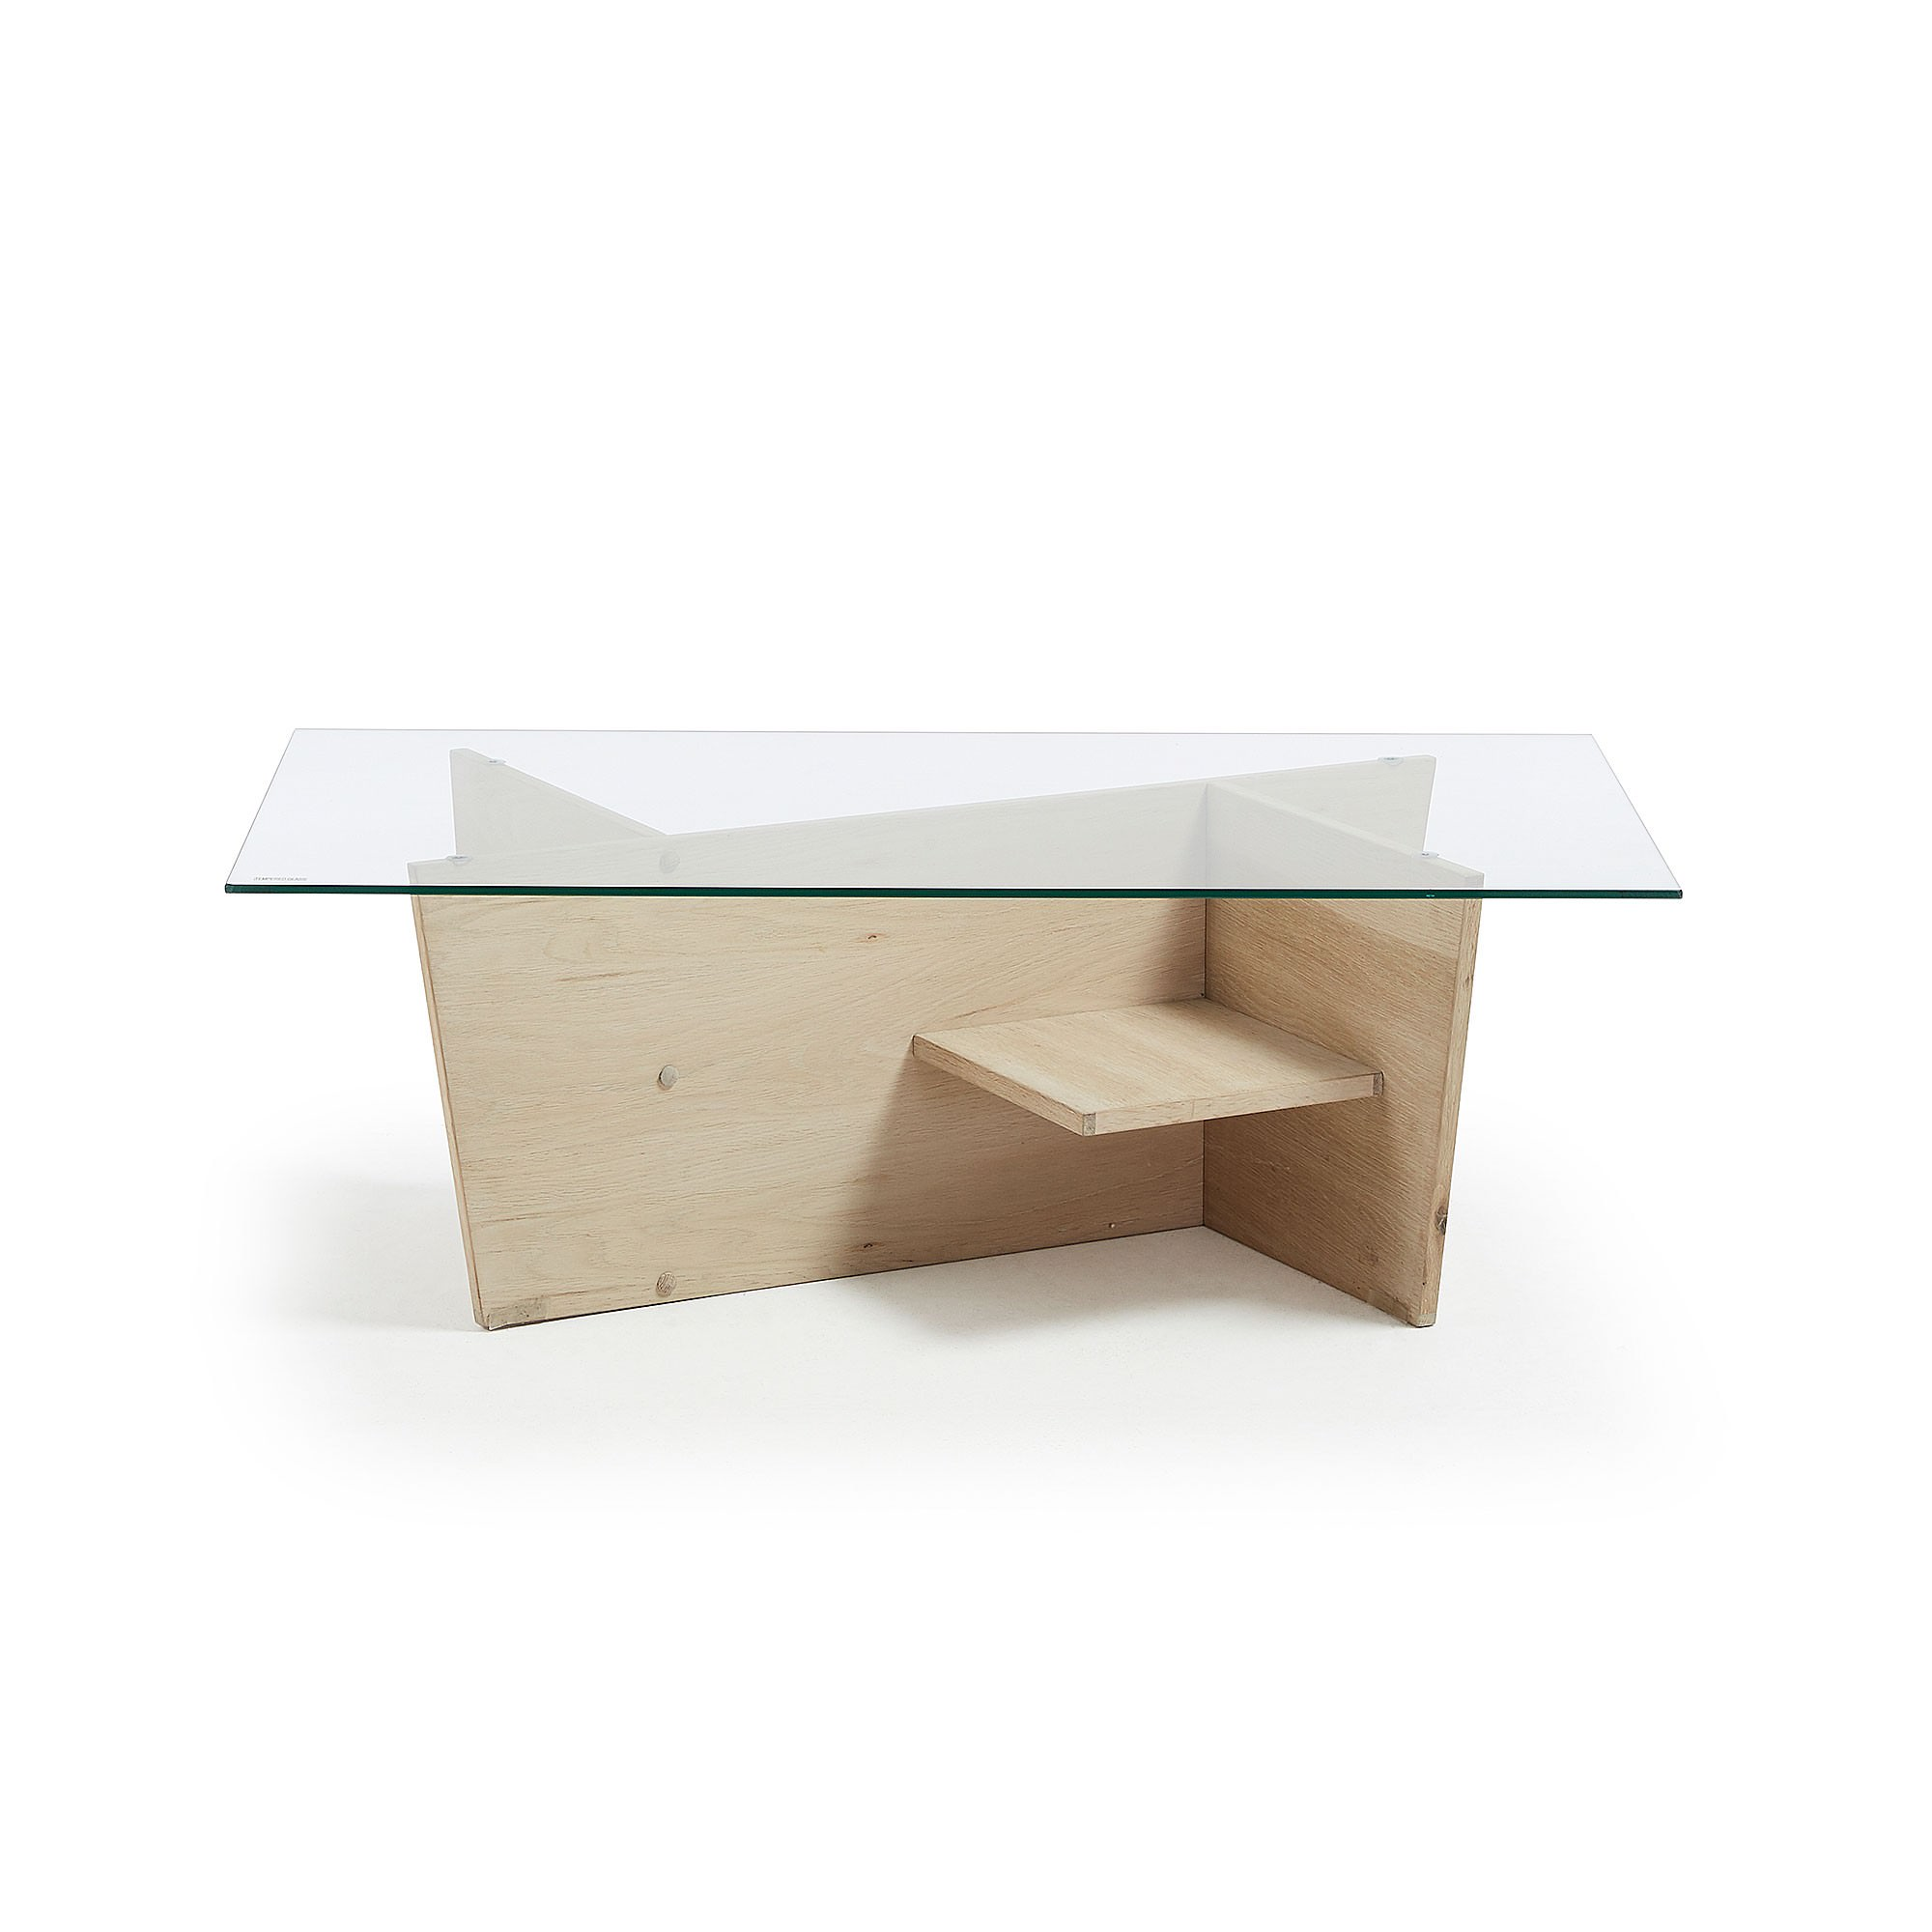 Gina Glass Topped Oak Timber Coffe Table, 110cm